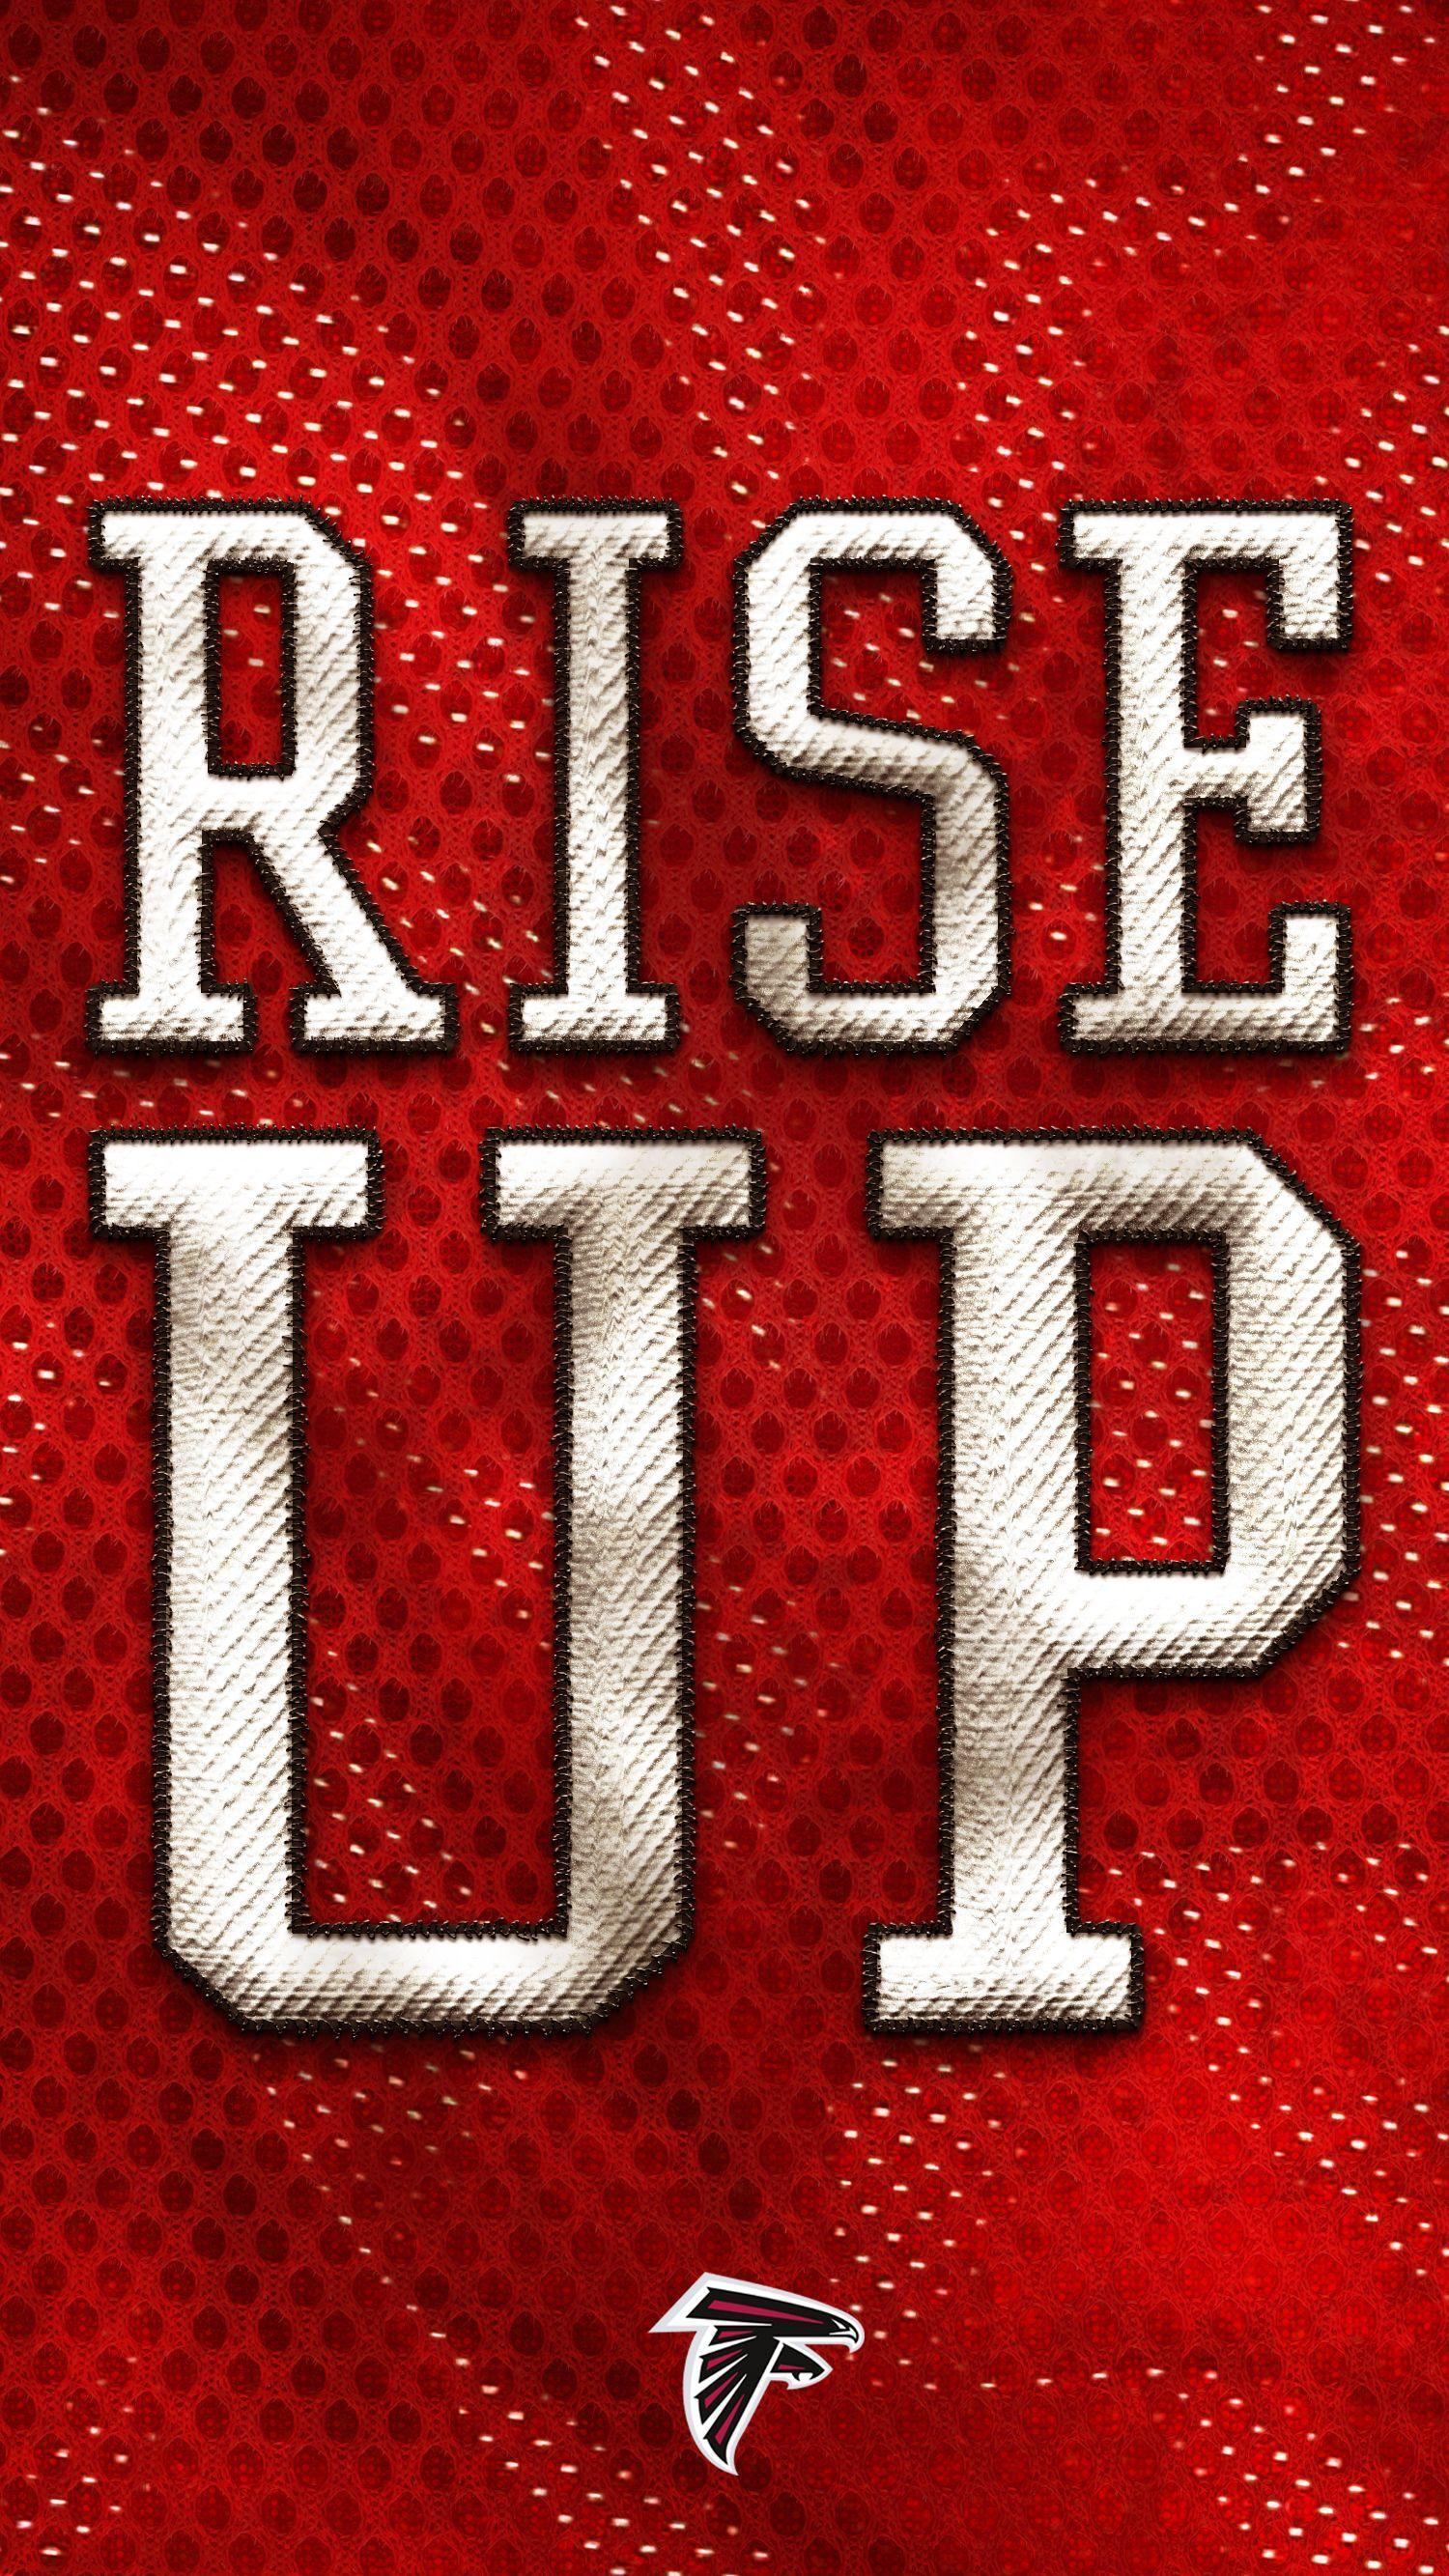 Atlanta Falcons Fans: rise up and grab this smartphone wallpapers